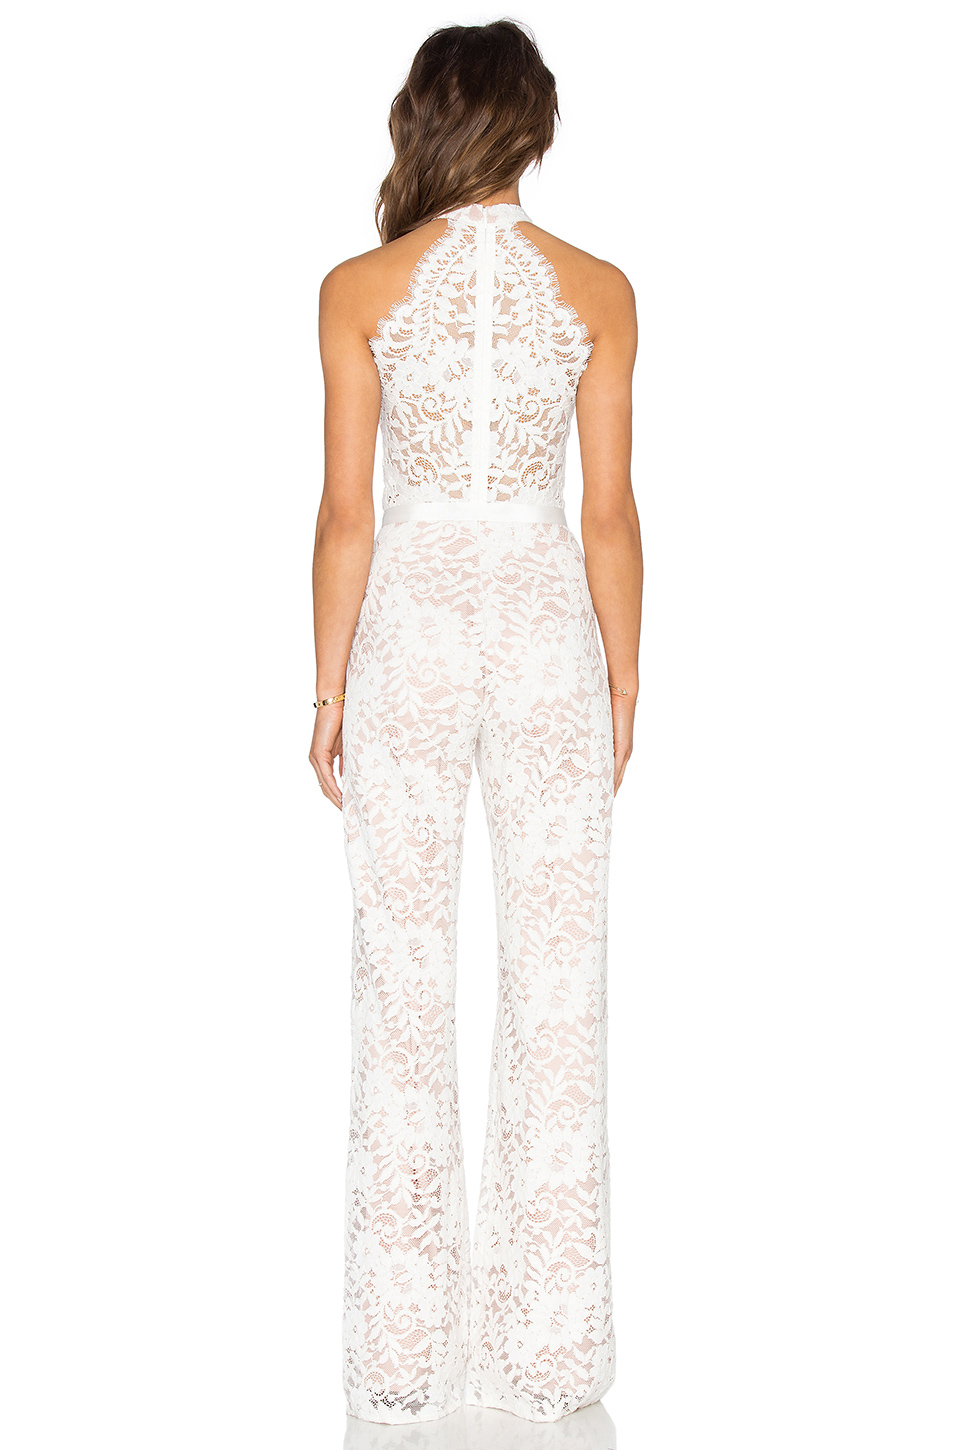 Lyst - Alexis Rene Jumpsuit in White